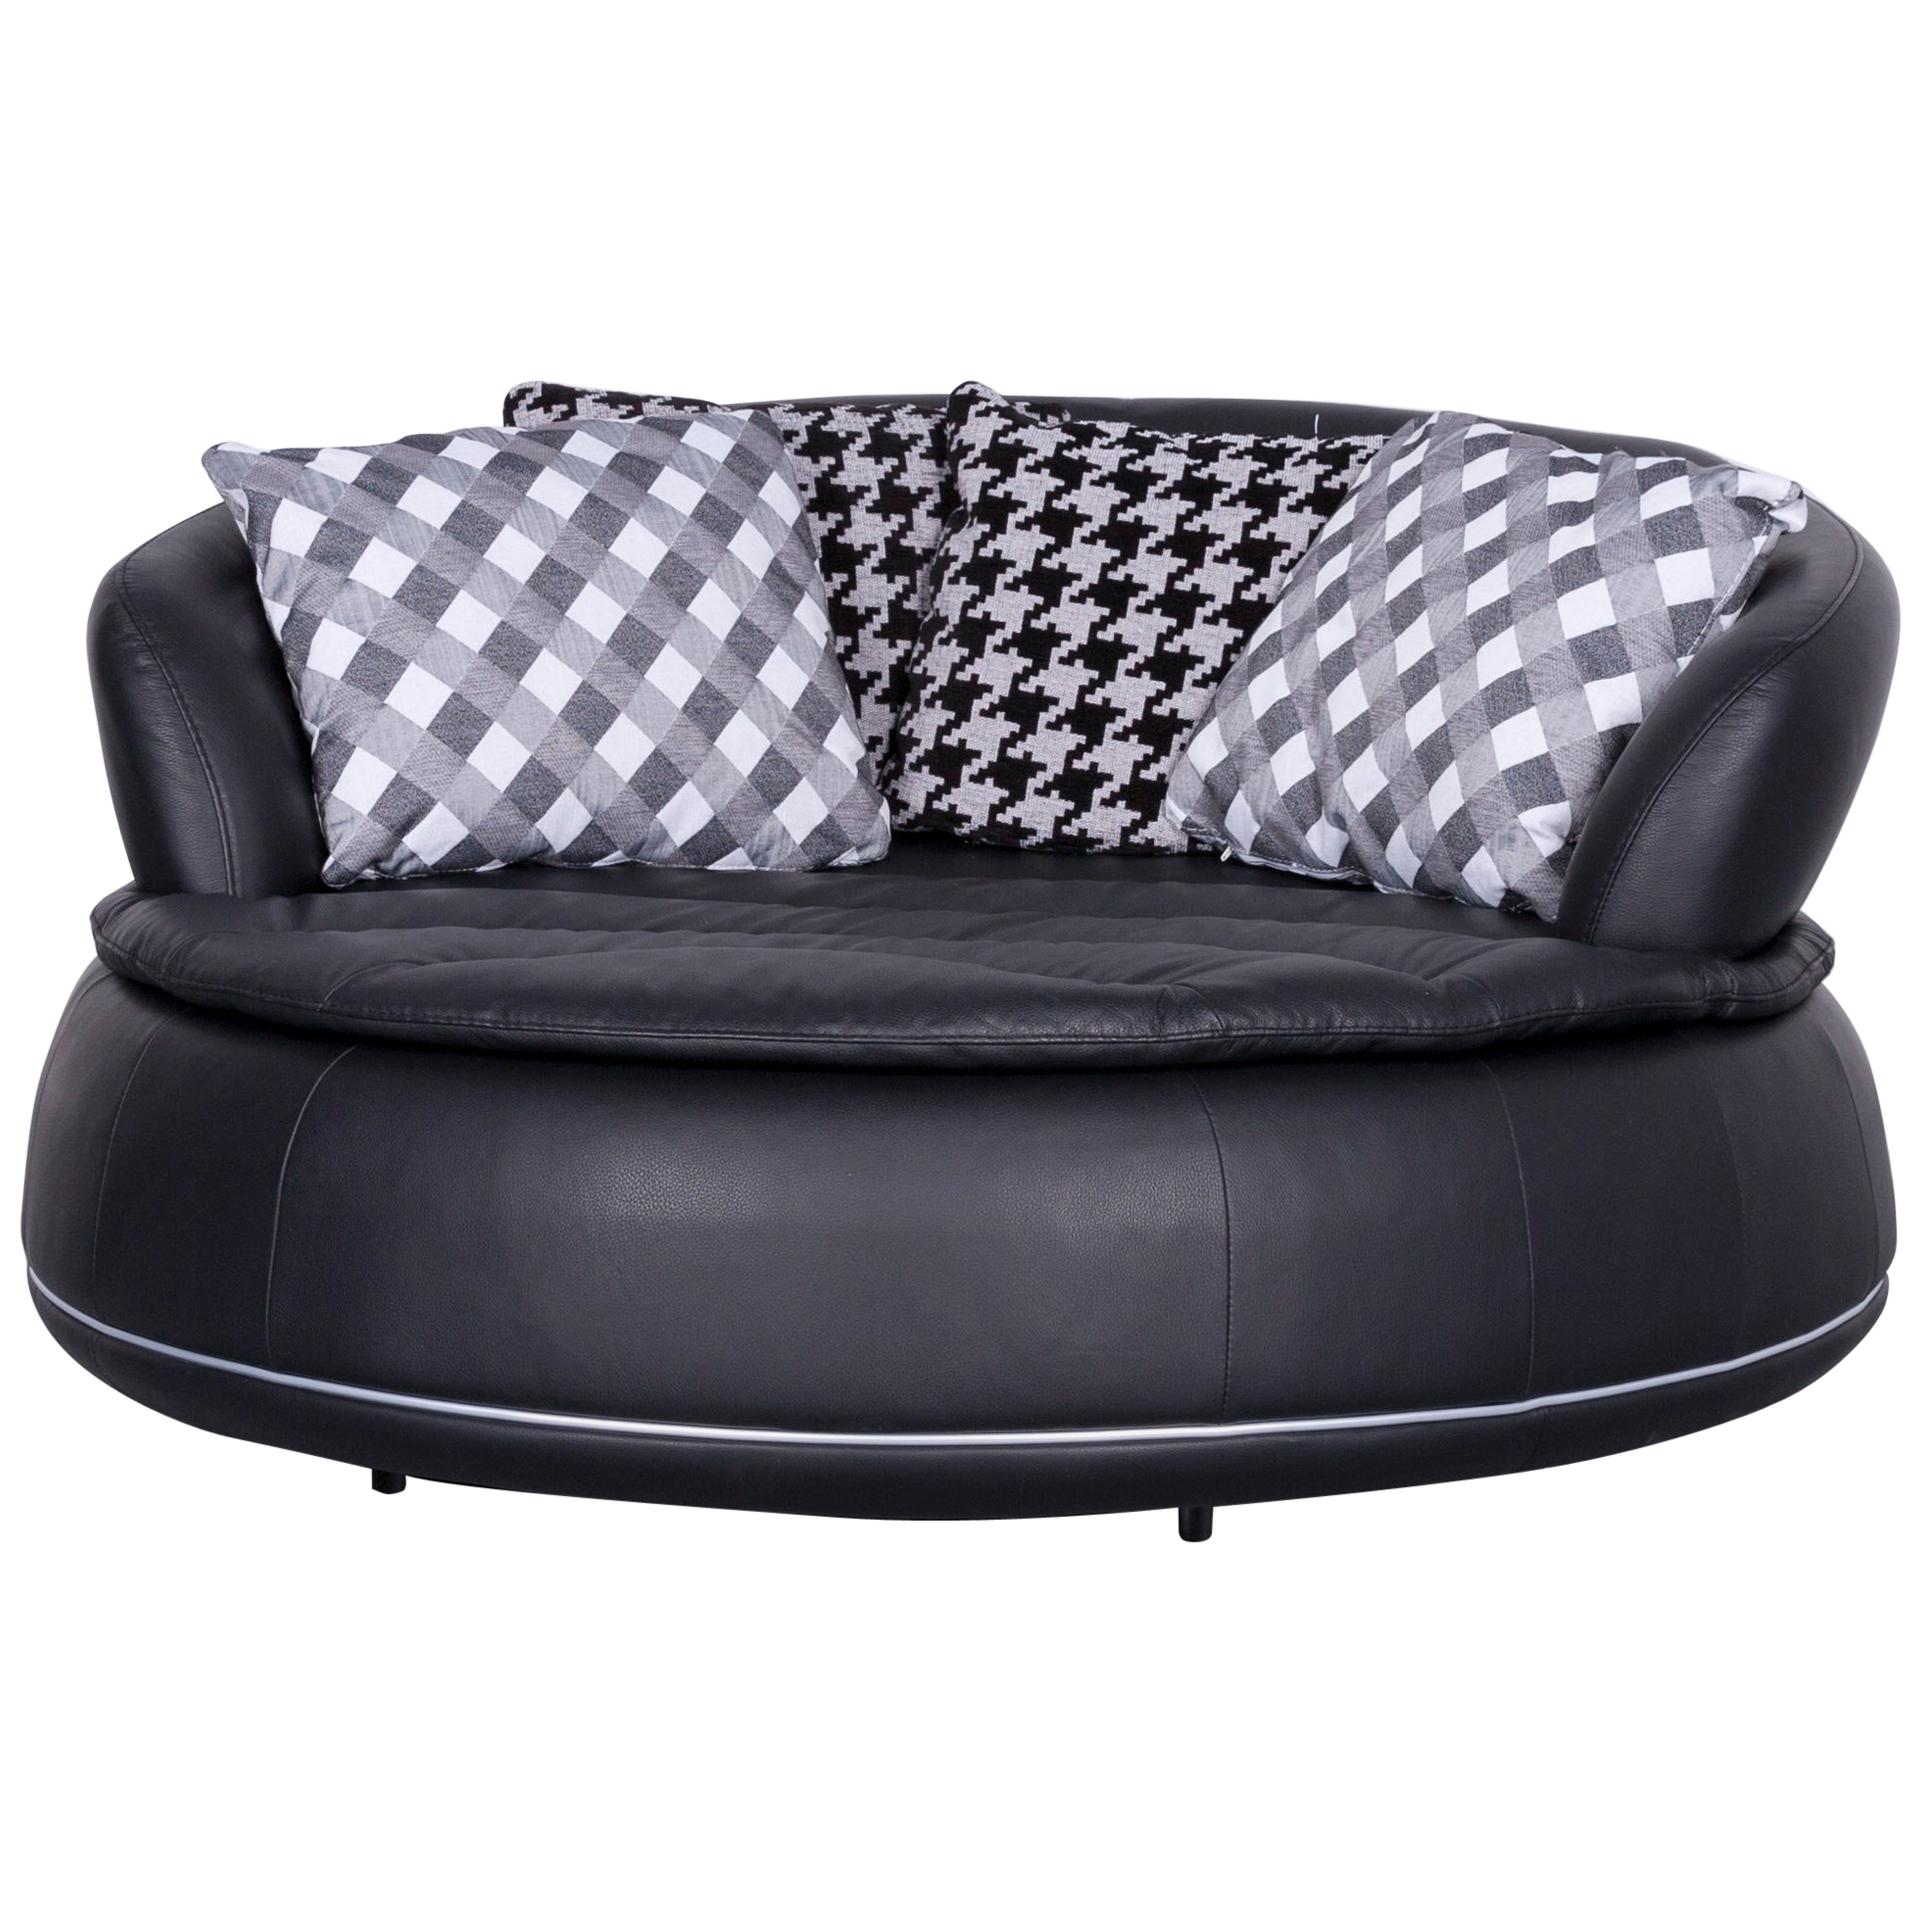 Awesome Nieri Espace Loveseat Designer Sofa Black Two Seat Round Lounge Couch For  Sale